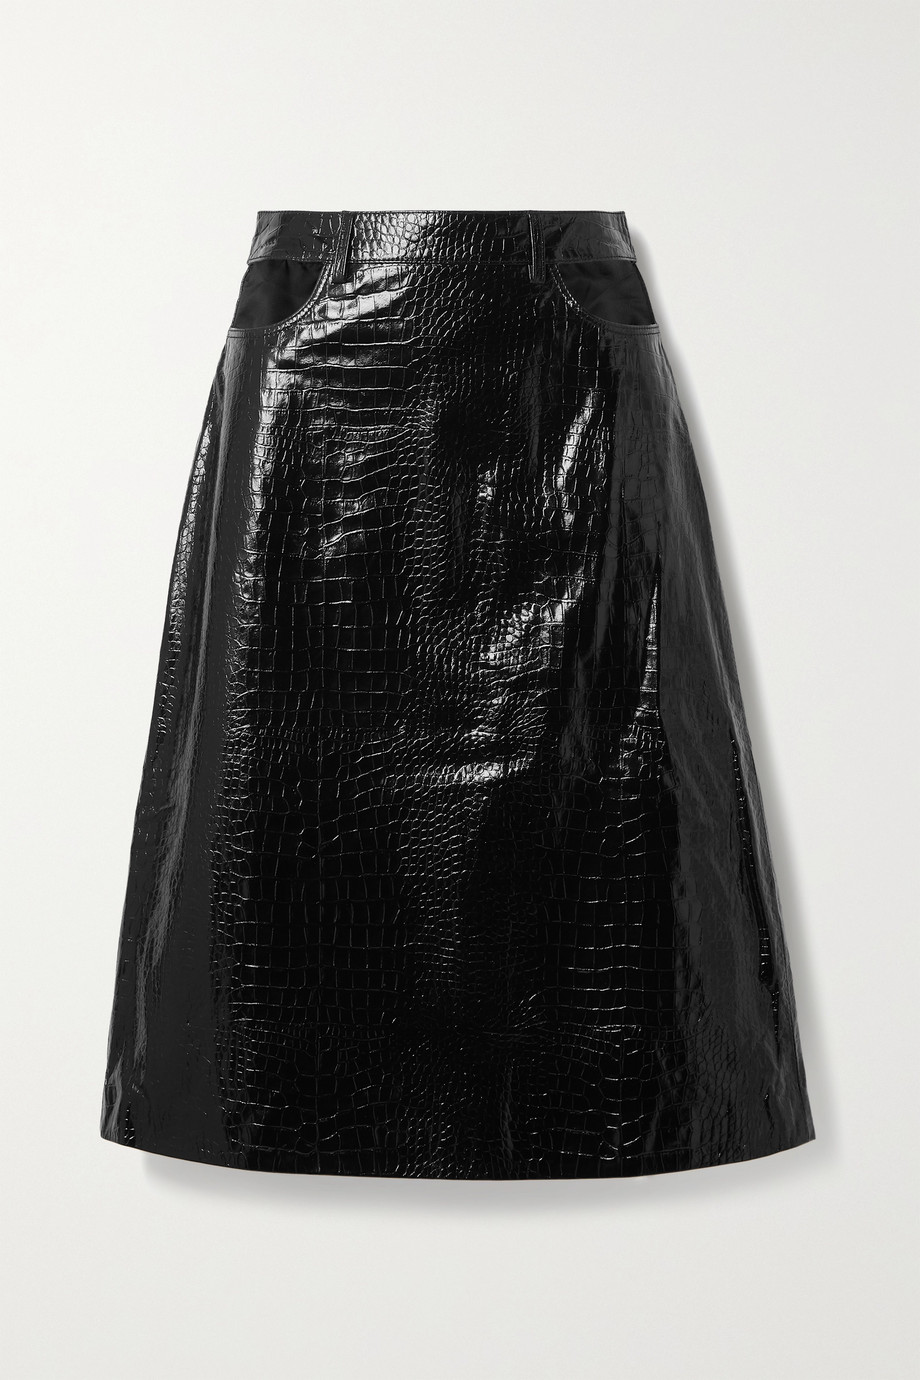 Dodo Bar Or Perla cutout croc-effect leather skirt